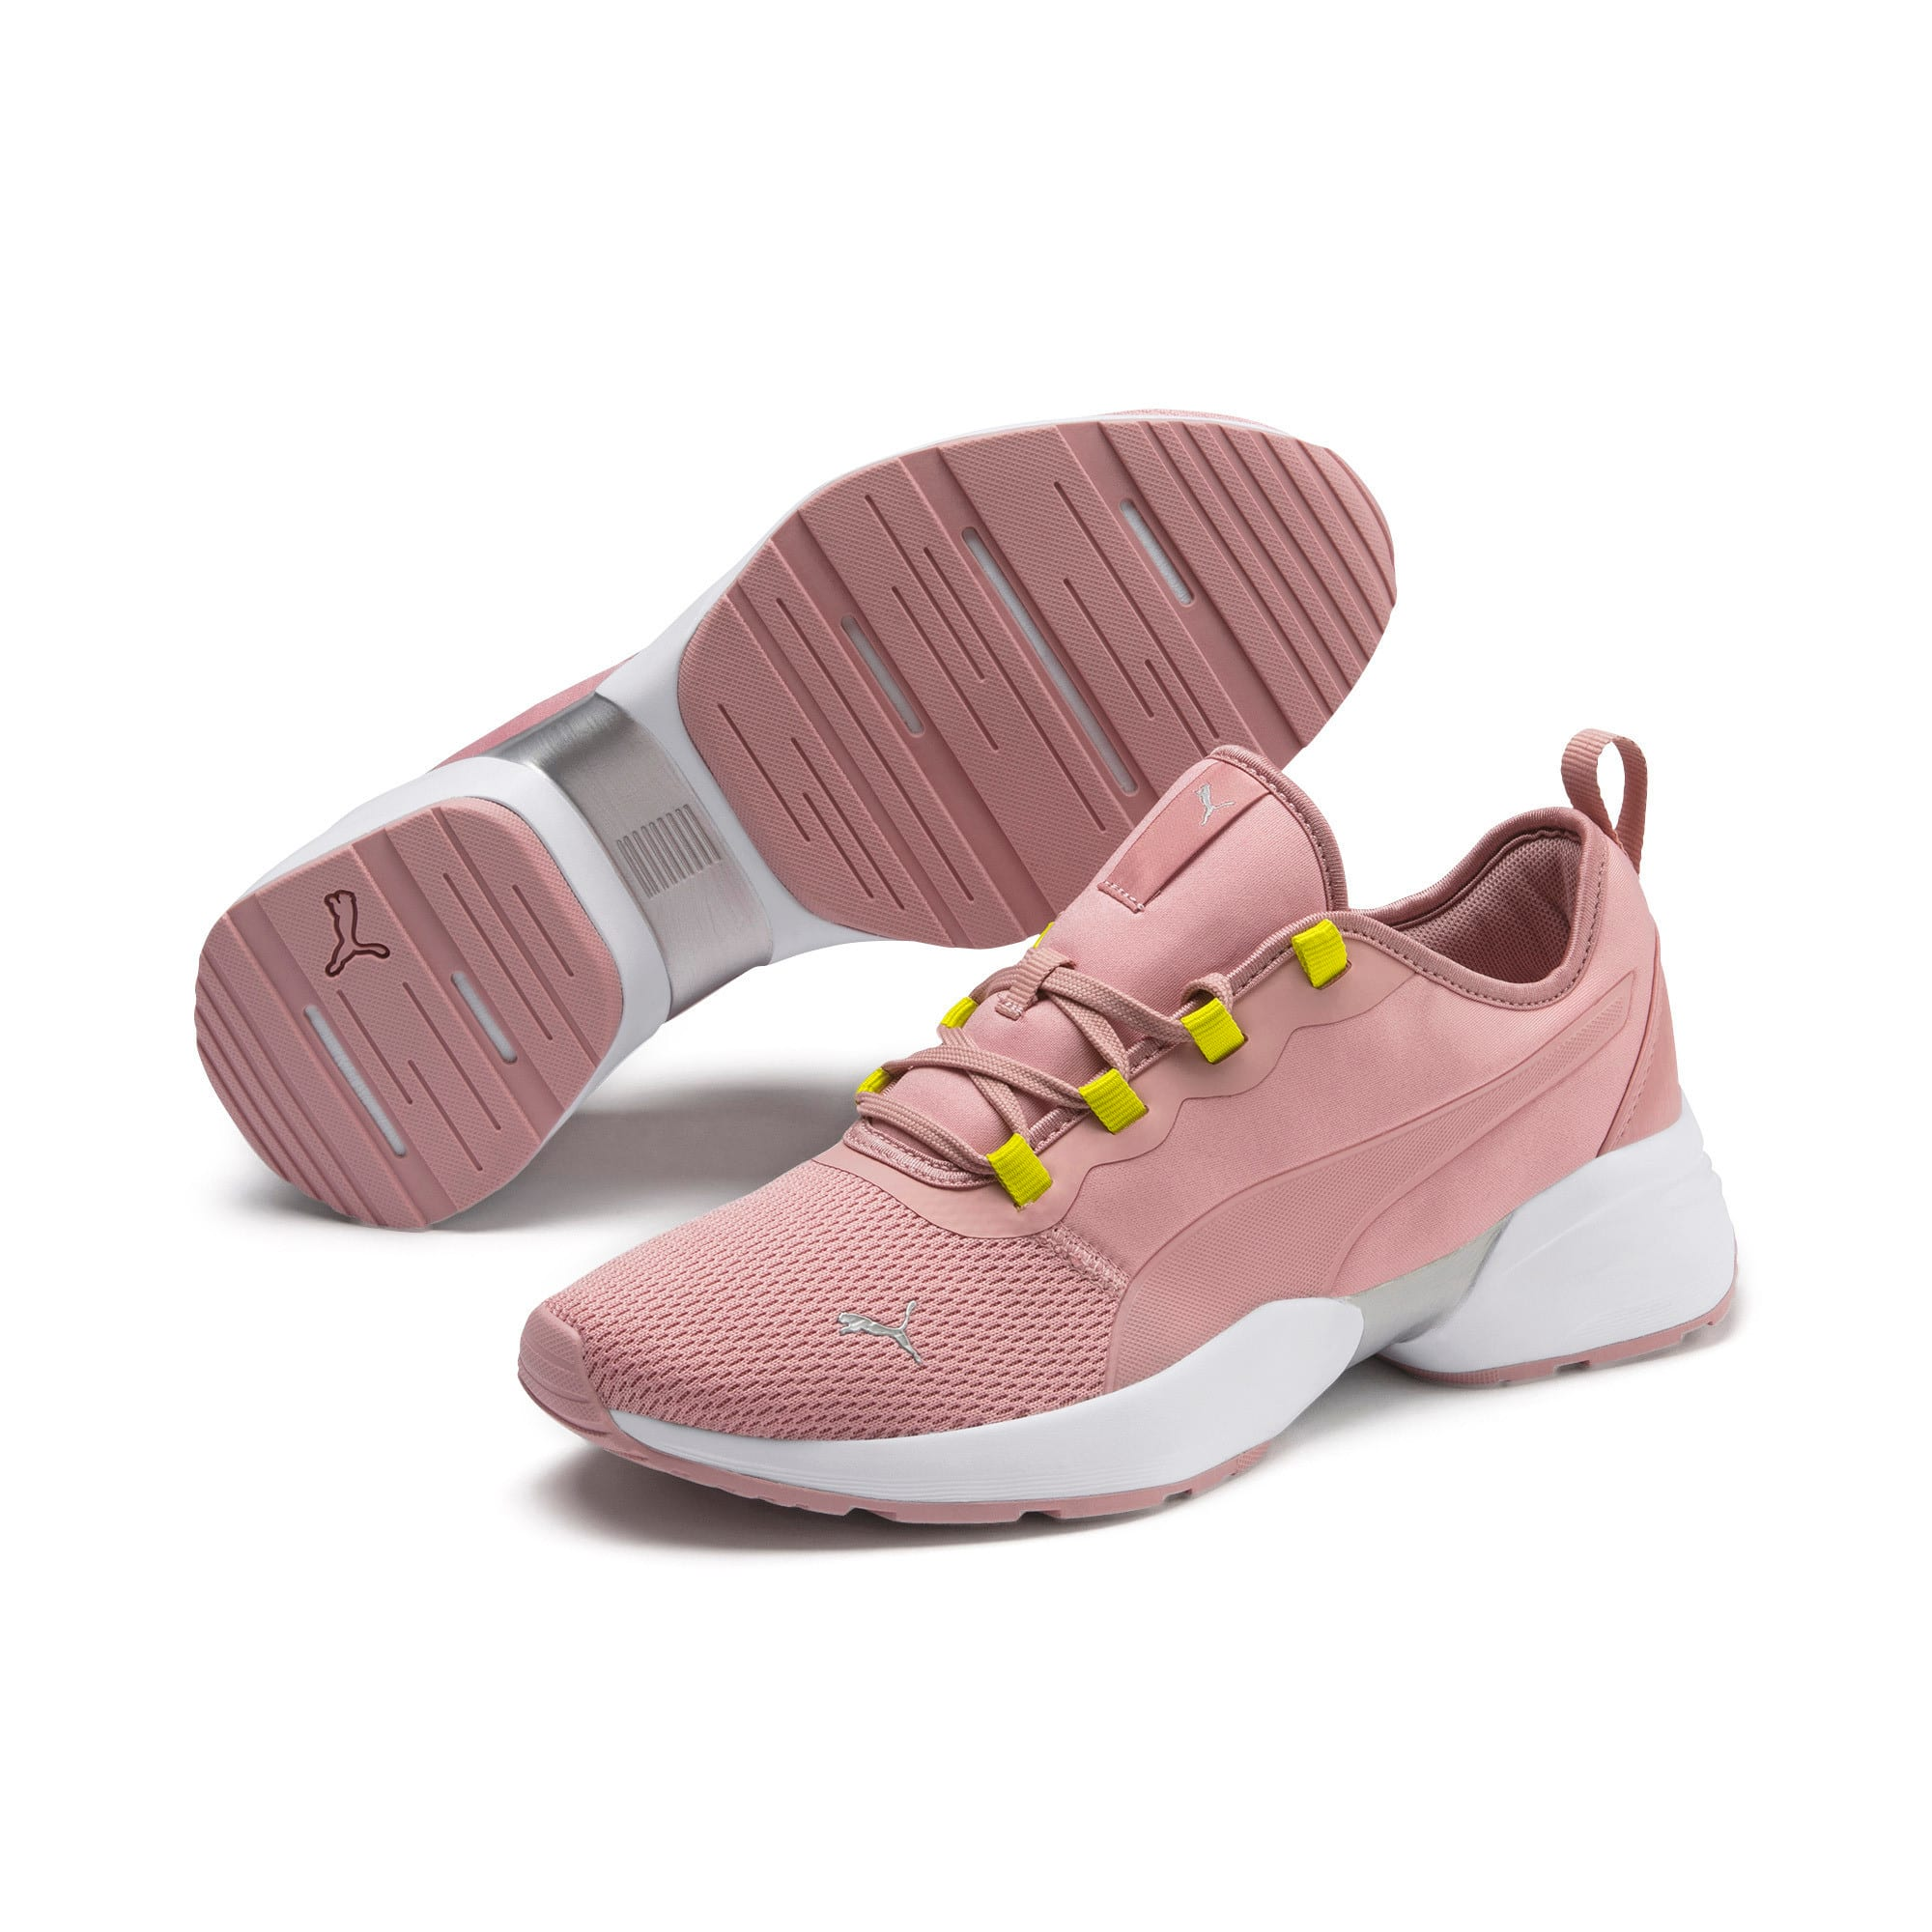 Thumbnail 3 of Sirena Sport Shift Women's Sneakers, Bridal Rose-Yellow Alert, medium